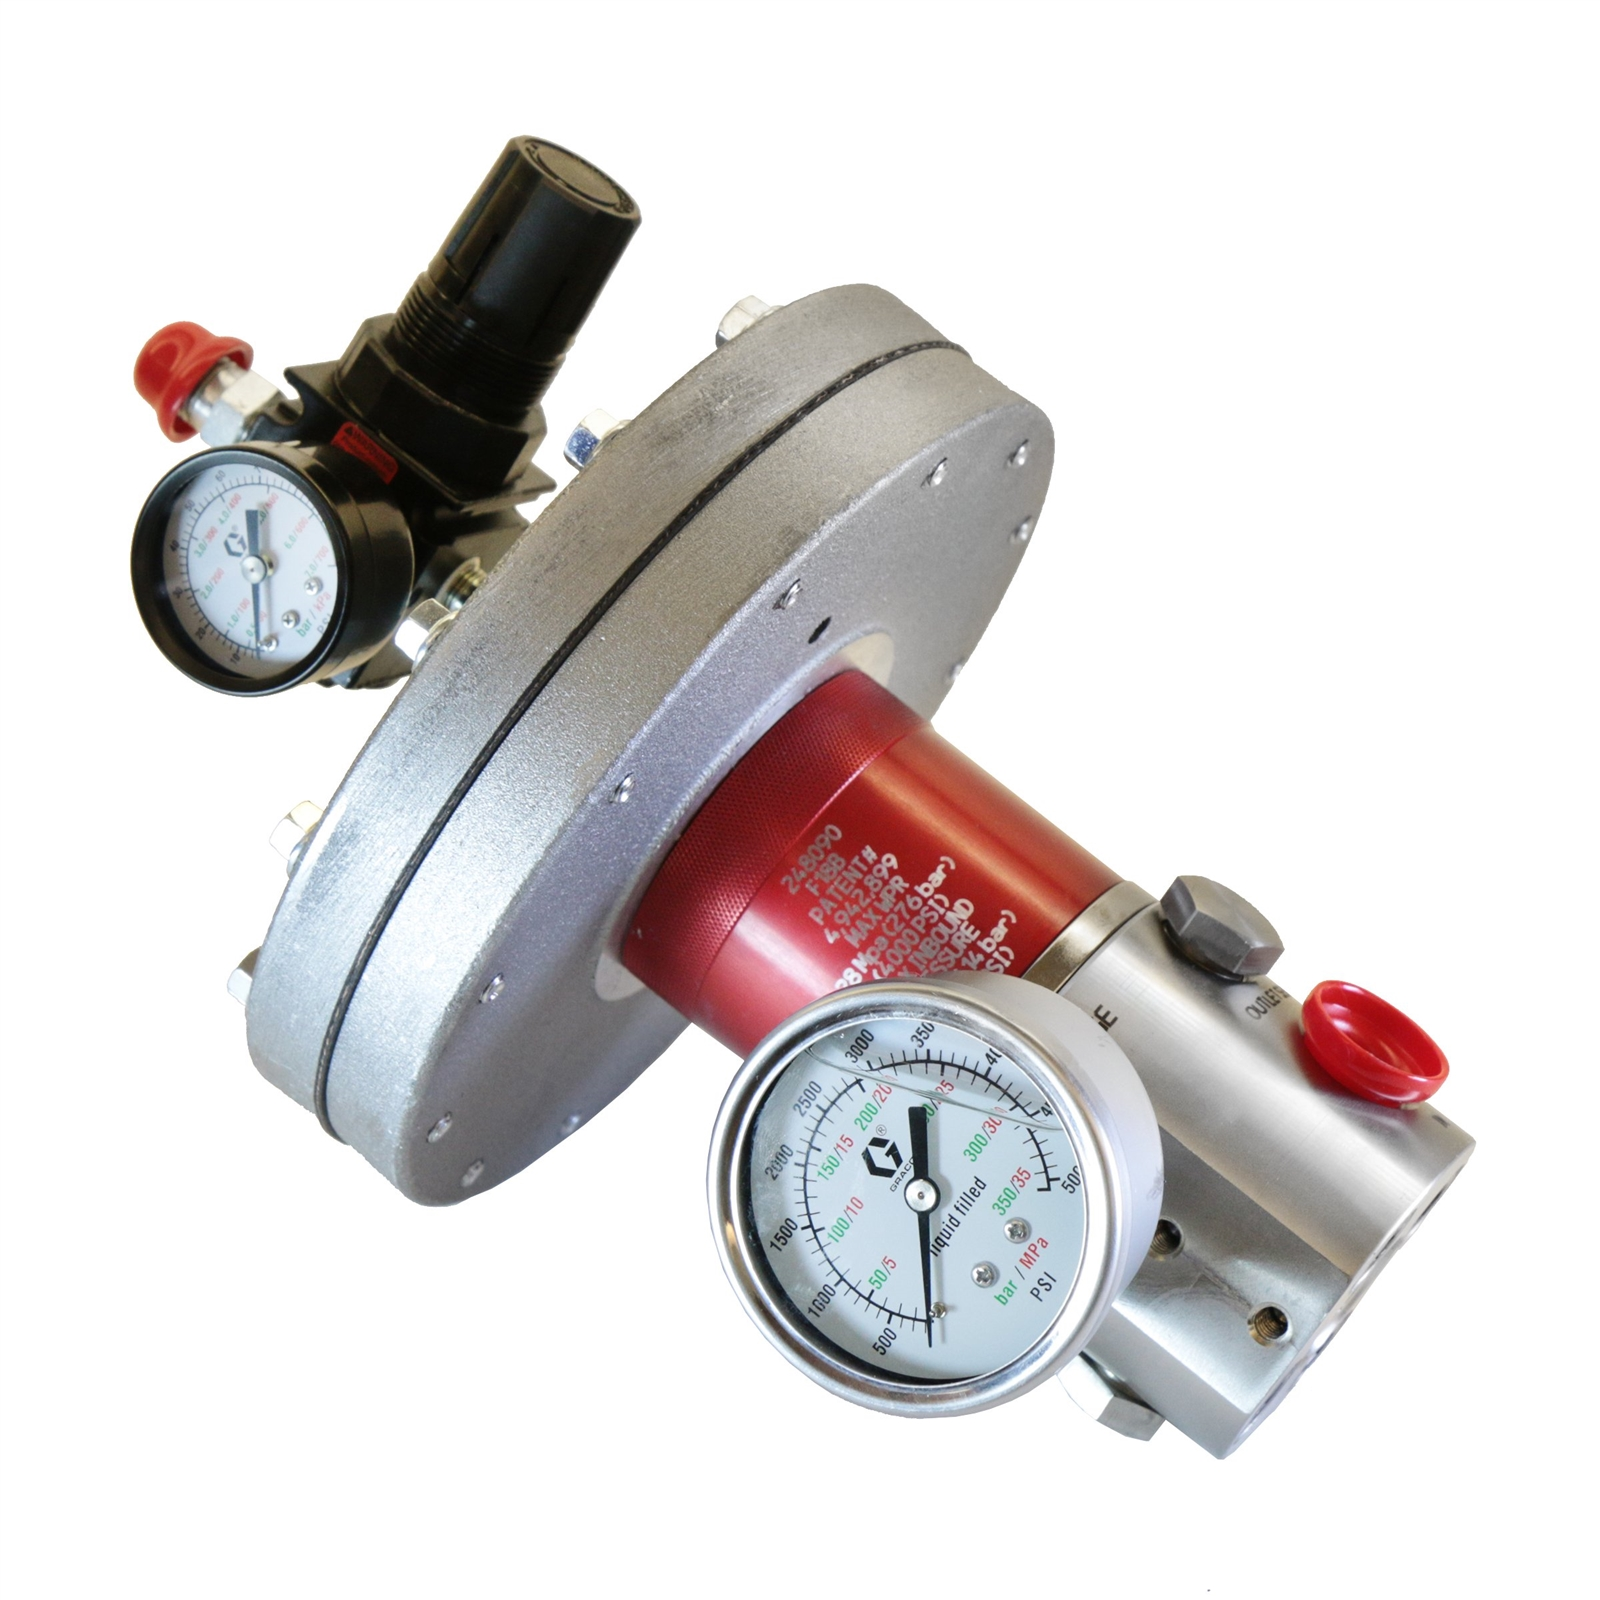 248090-air-operated-fluid-pressure-regulator